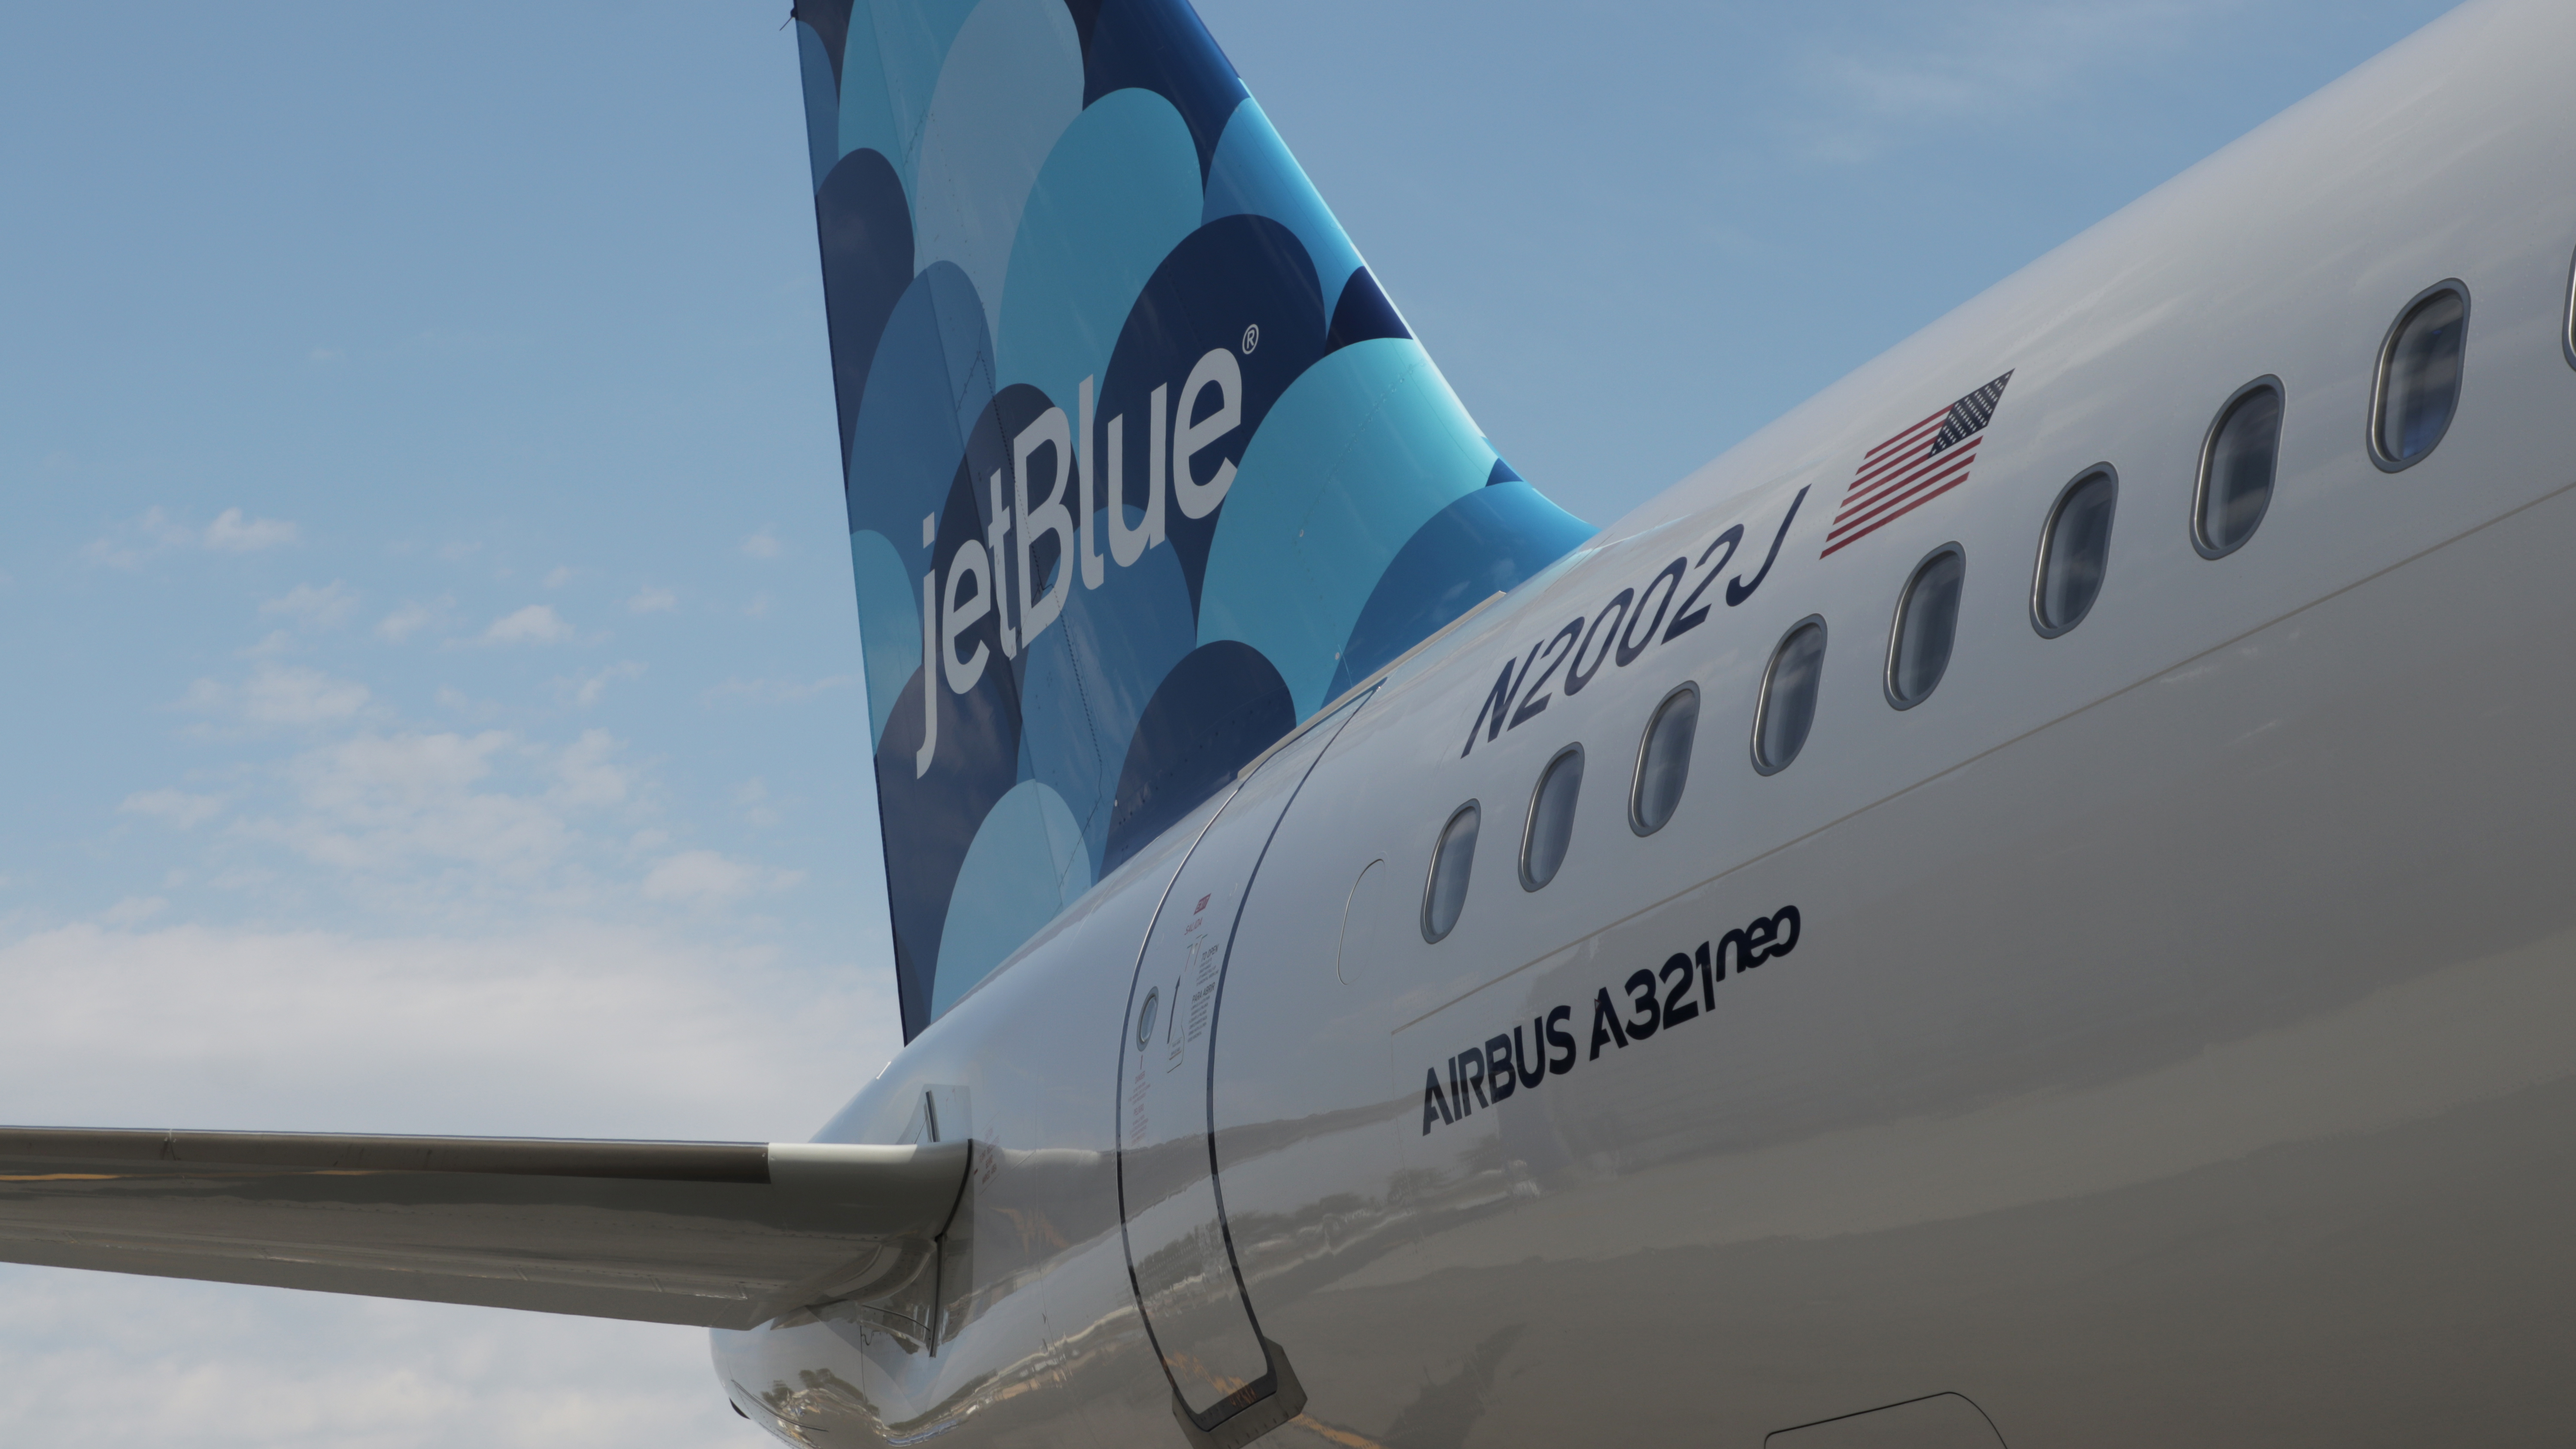 Ex-JetBlue employee faces 20 years in prison for scamming airline of nearly $1M